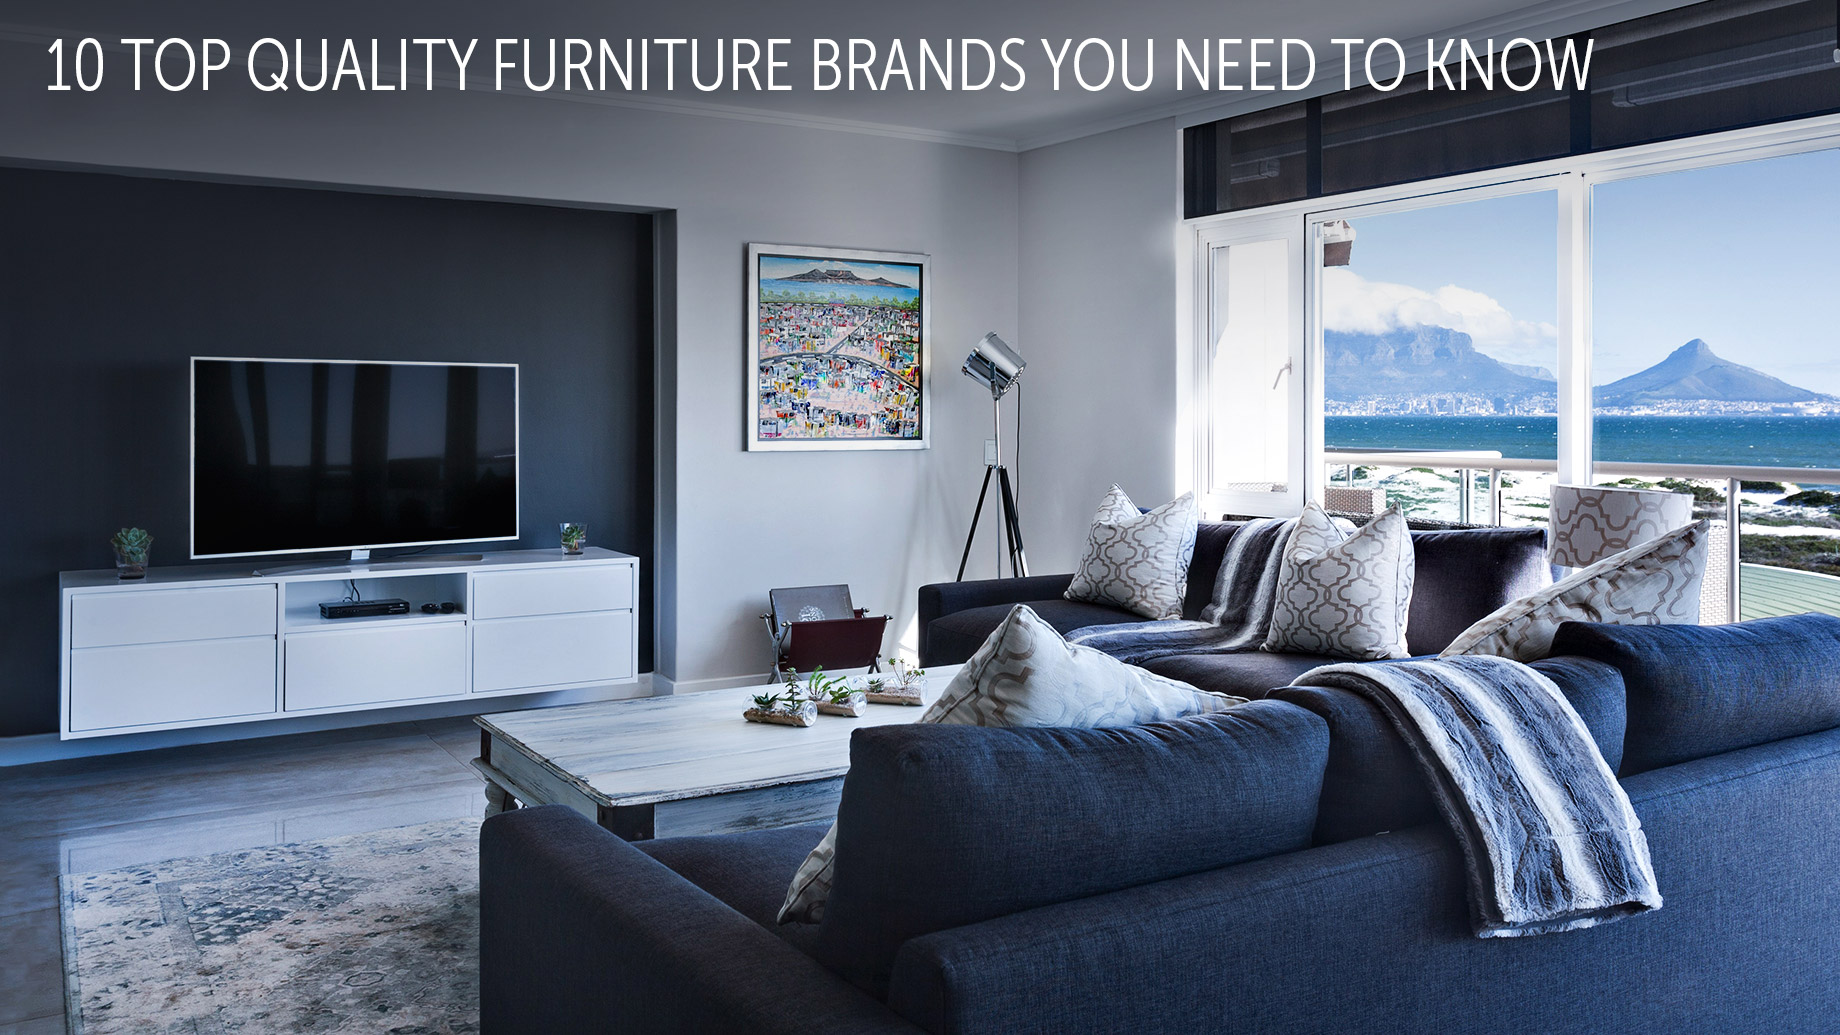 Interior Design Trends - 10 Top Quality Furniture Brands You Need to Know